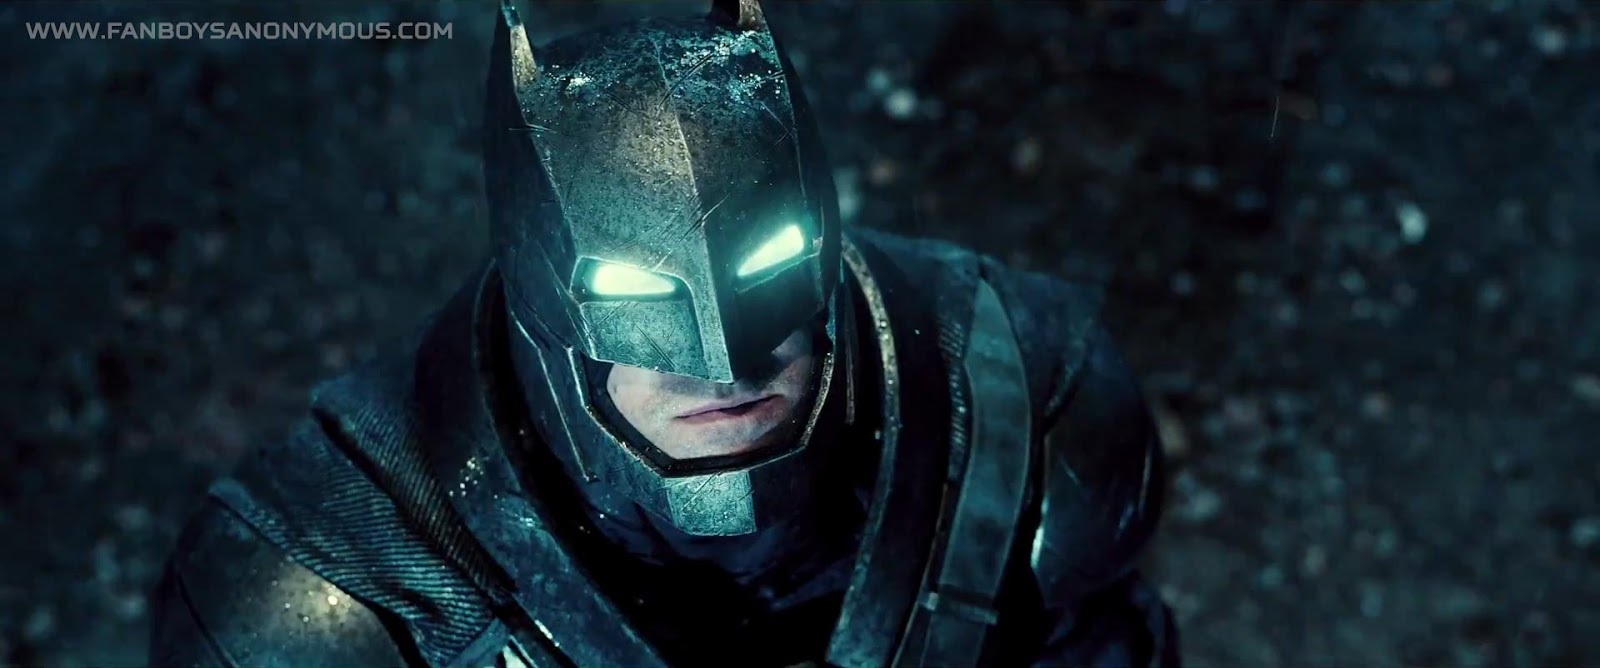 poster Batman v Superman Dawn of Justice trailer screenshots